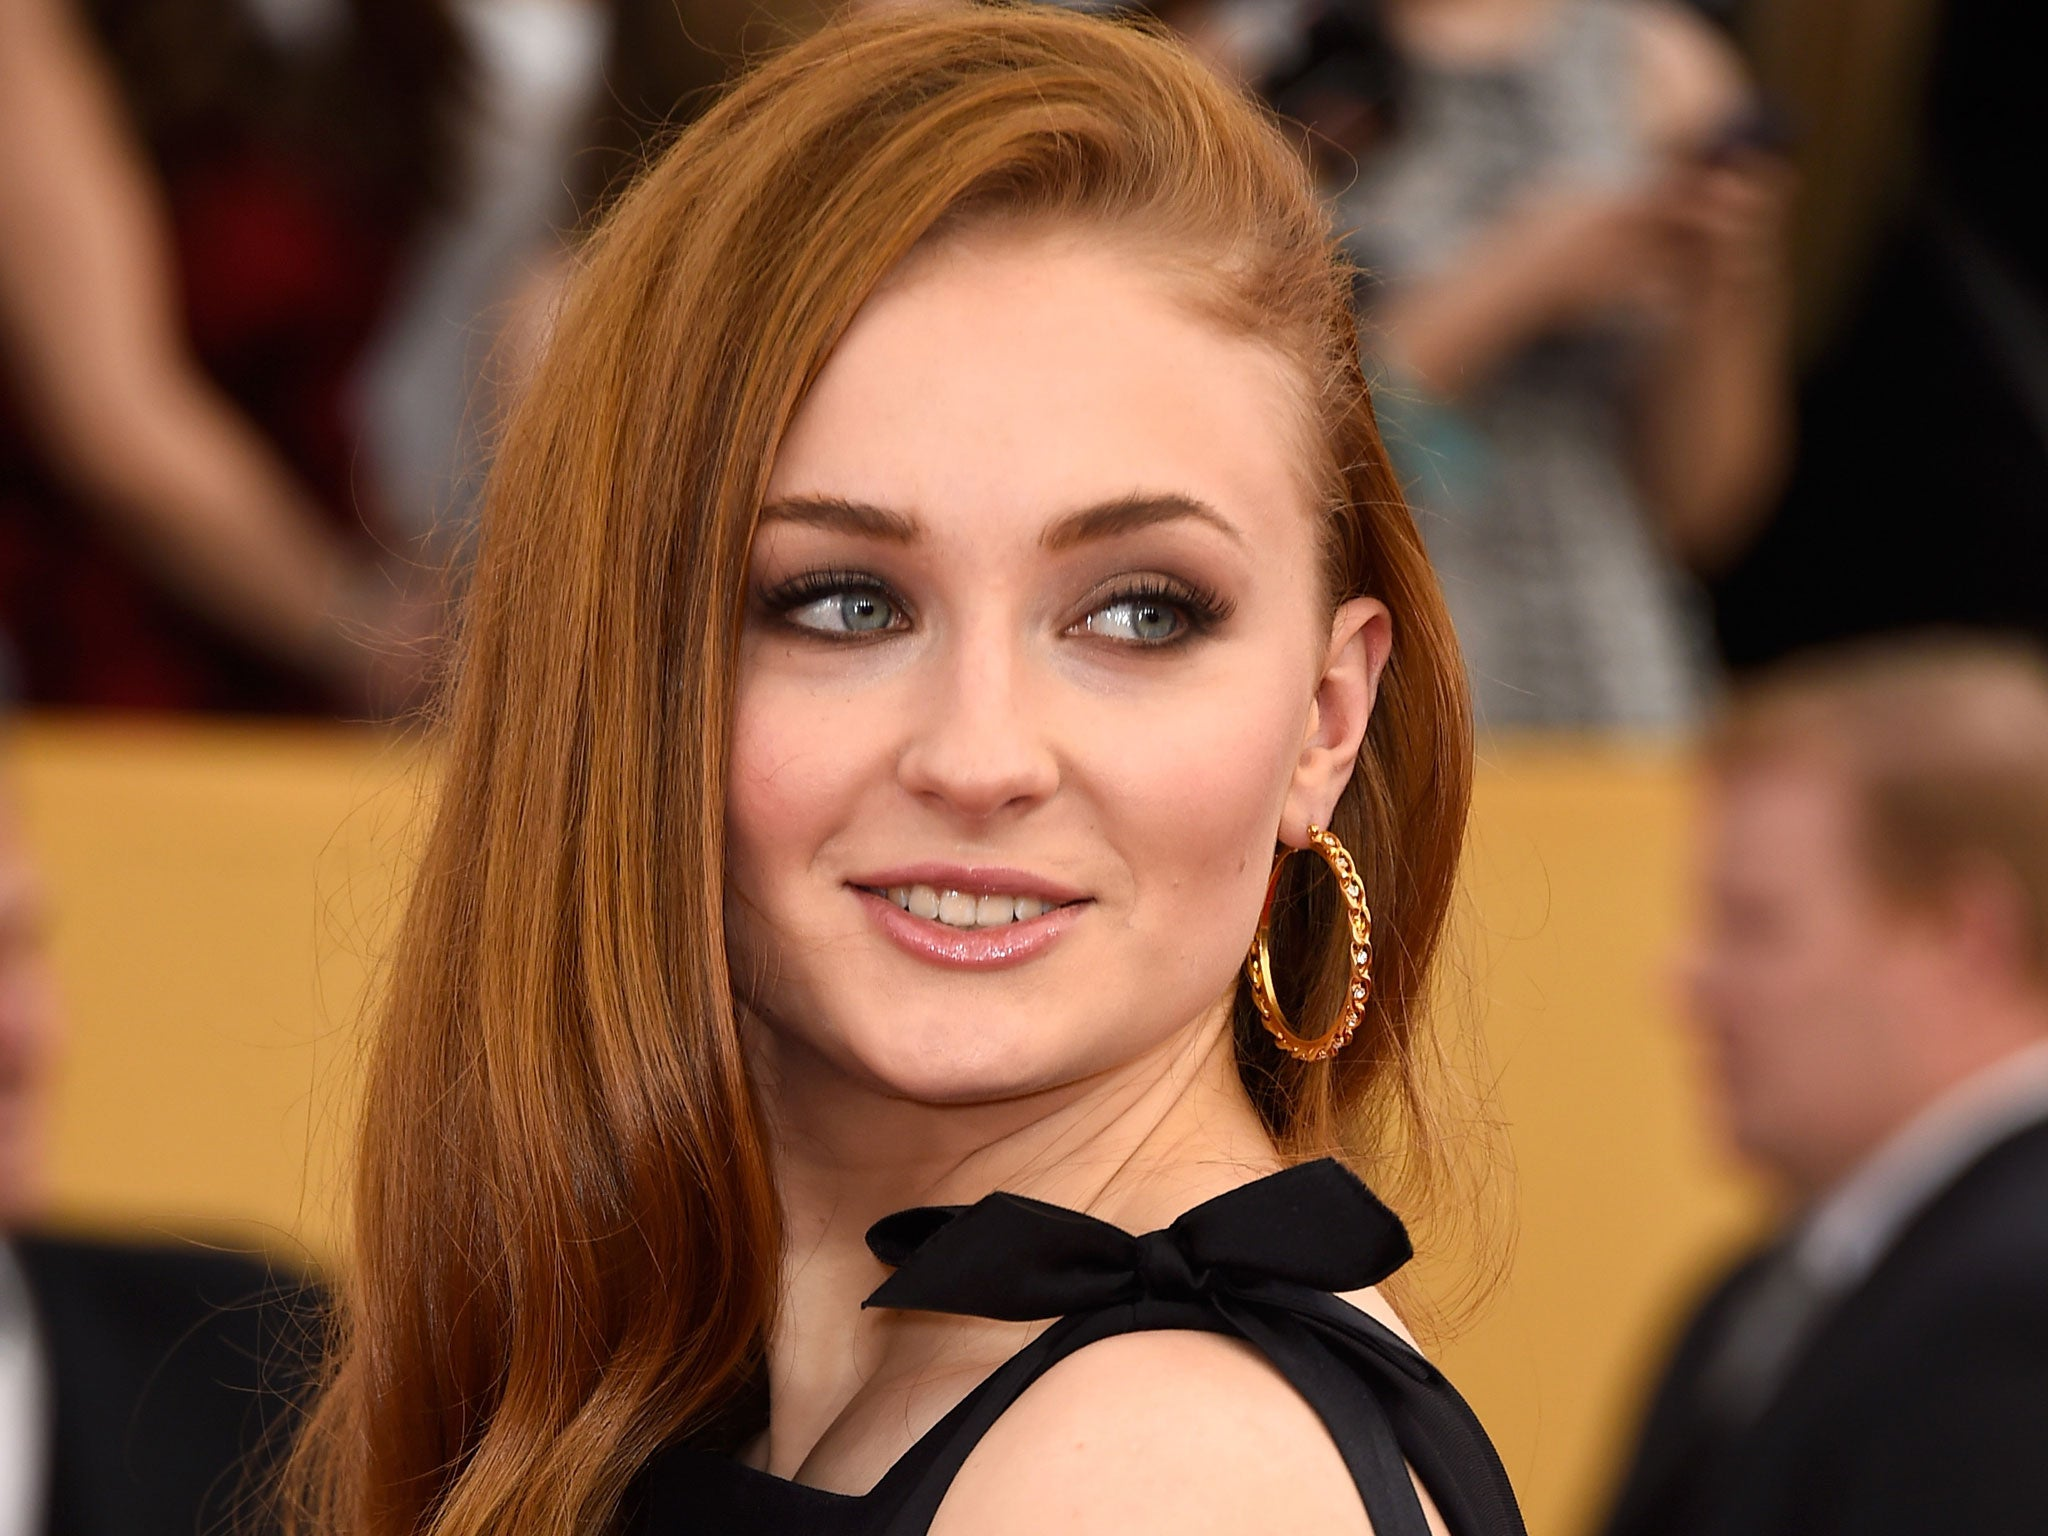 Sophie Turner earned a  million dollar salary, leaving the net worth at 5 million in 2017